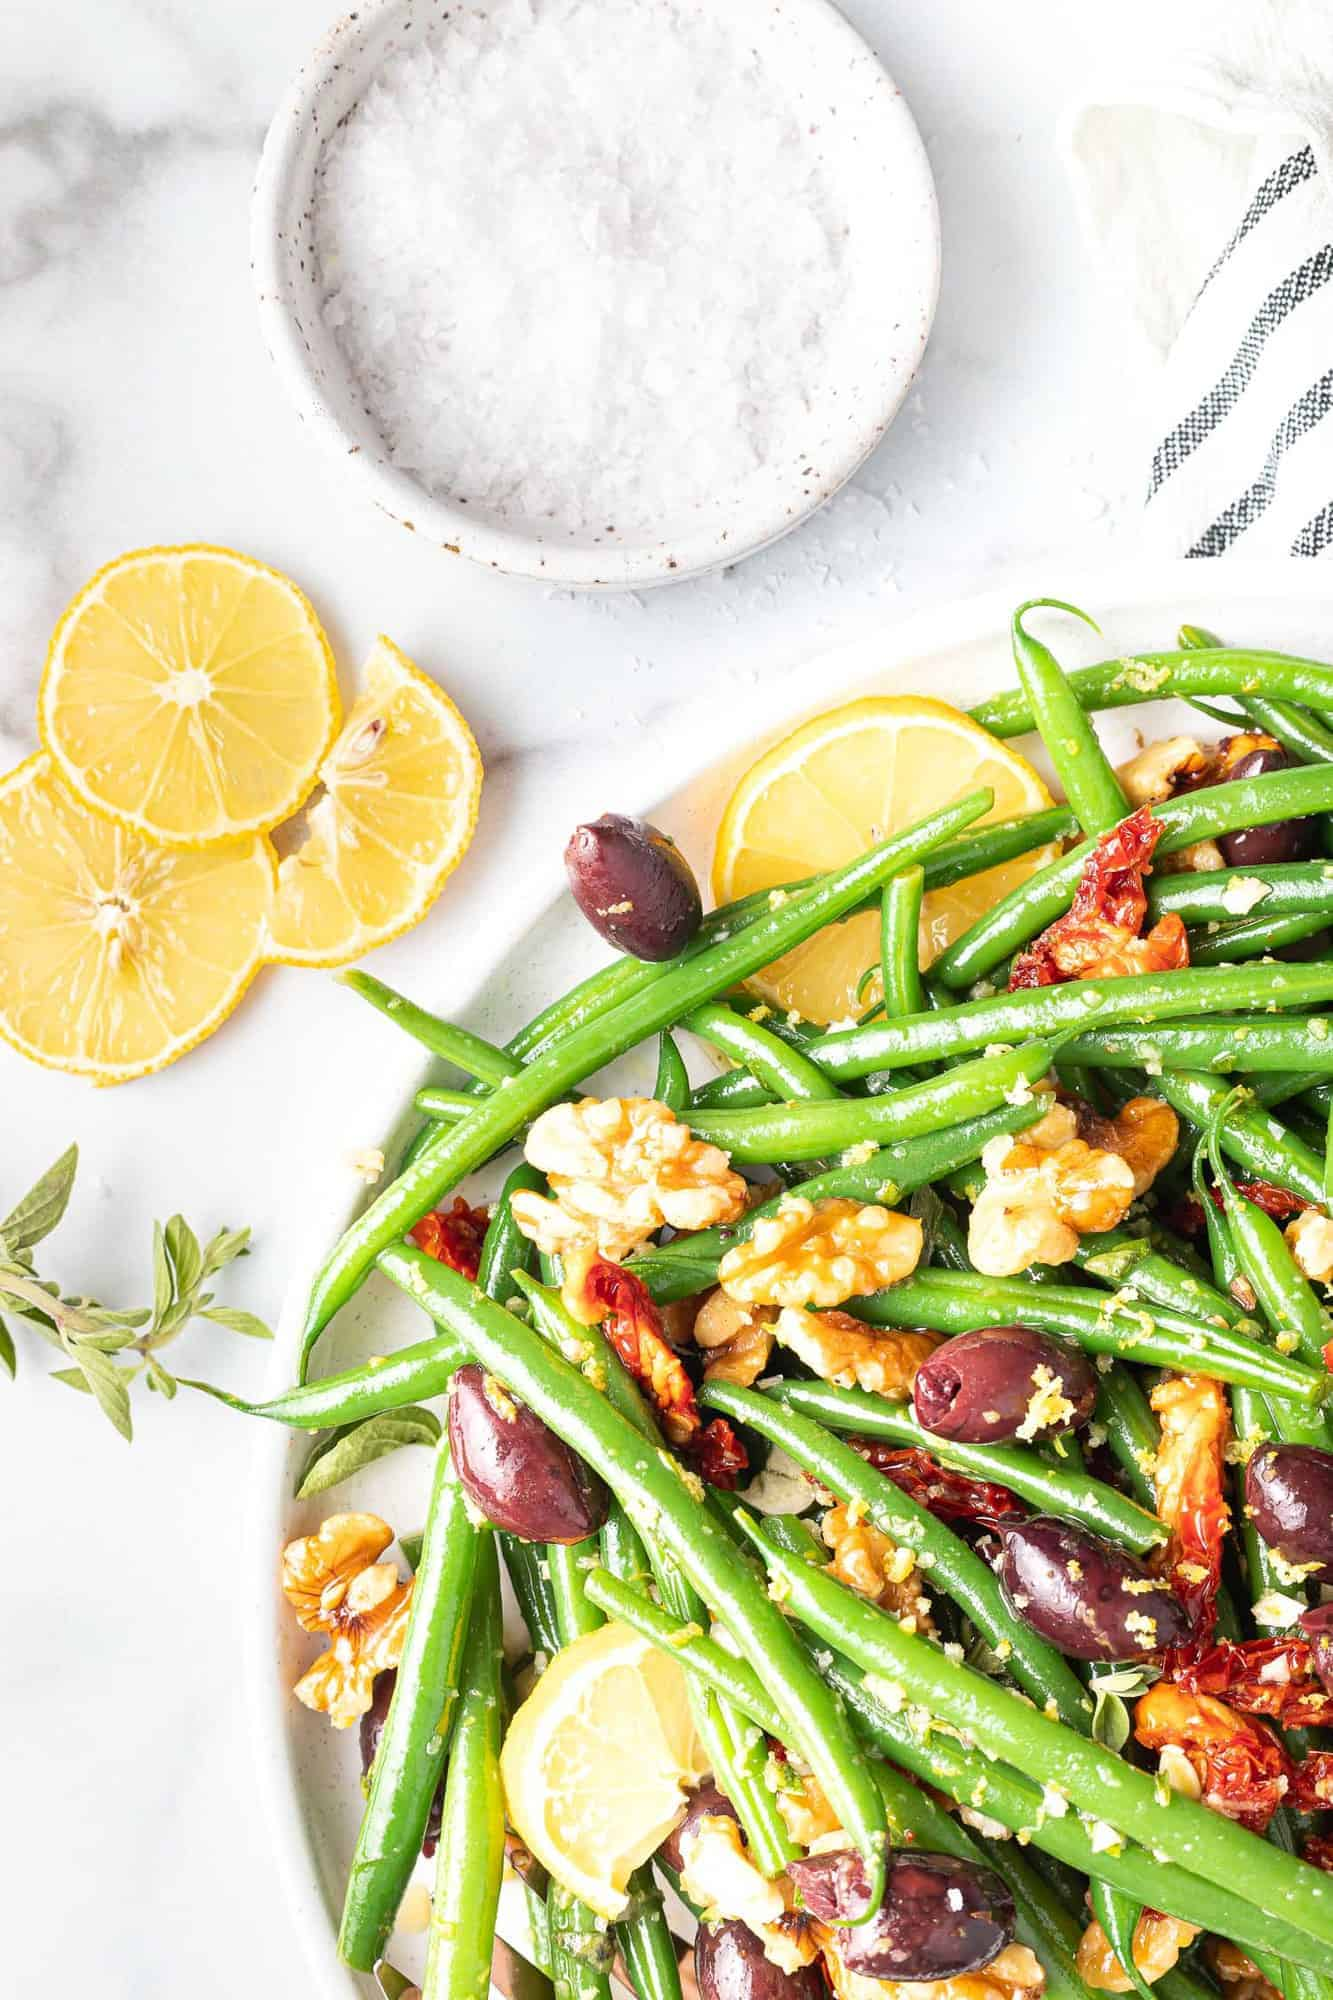 Colorful green bean salad, lemon slices and salt nearby.